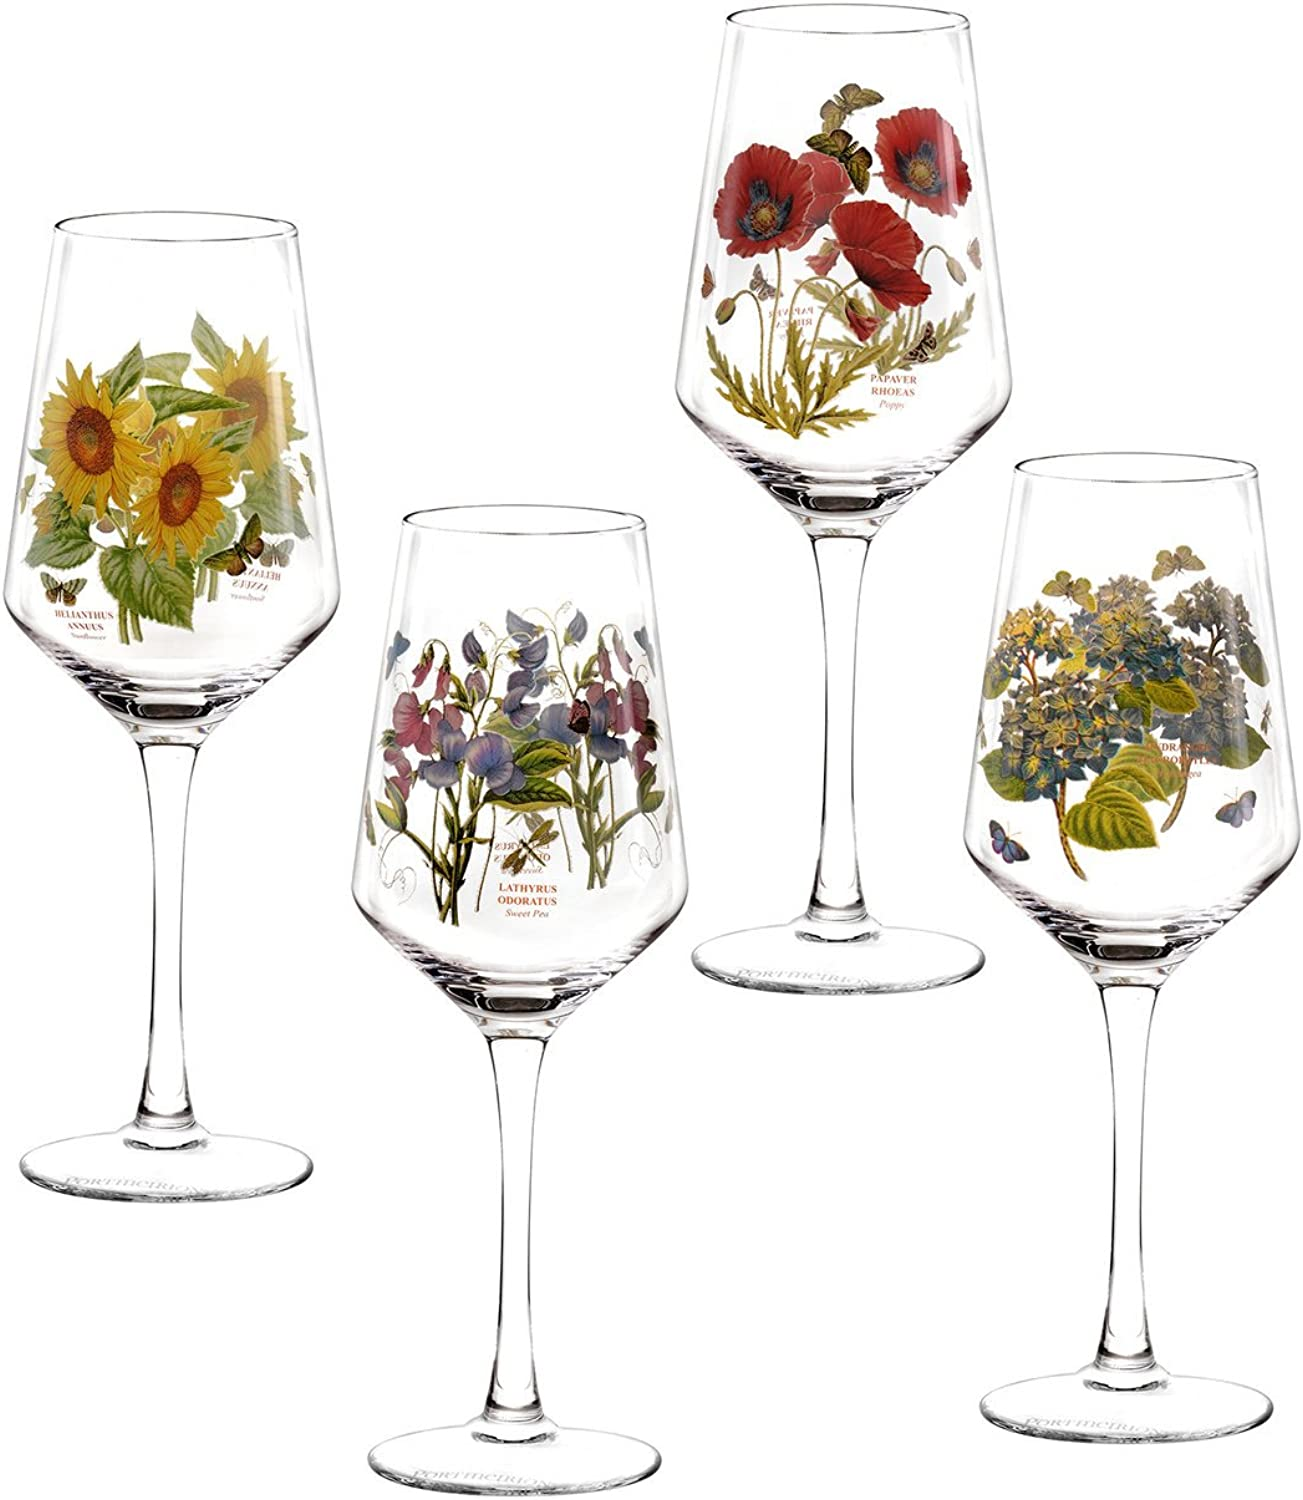 Portmeirion Botanic Garden Set of 4 Wine Glasses